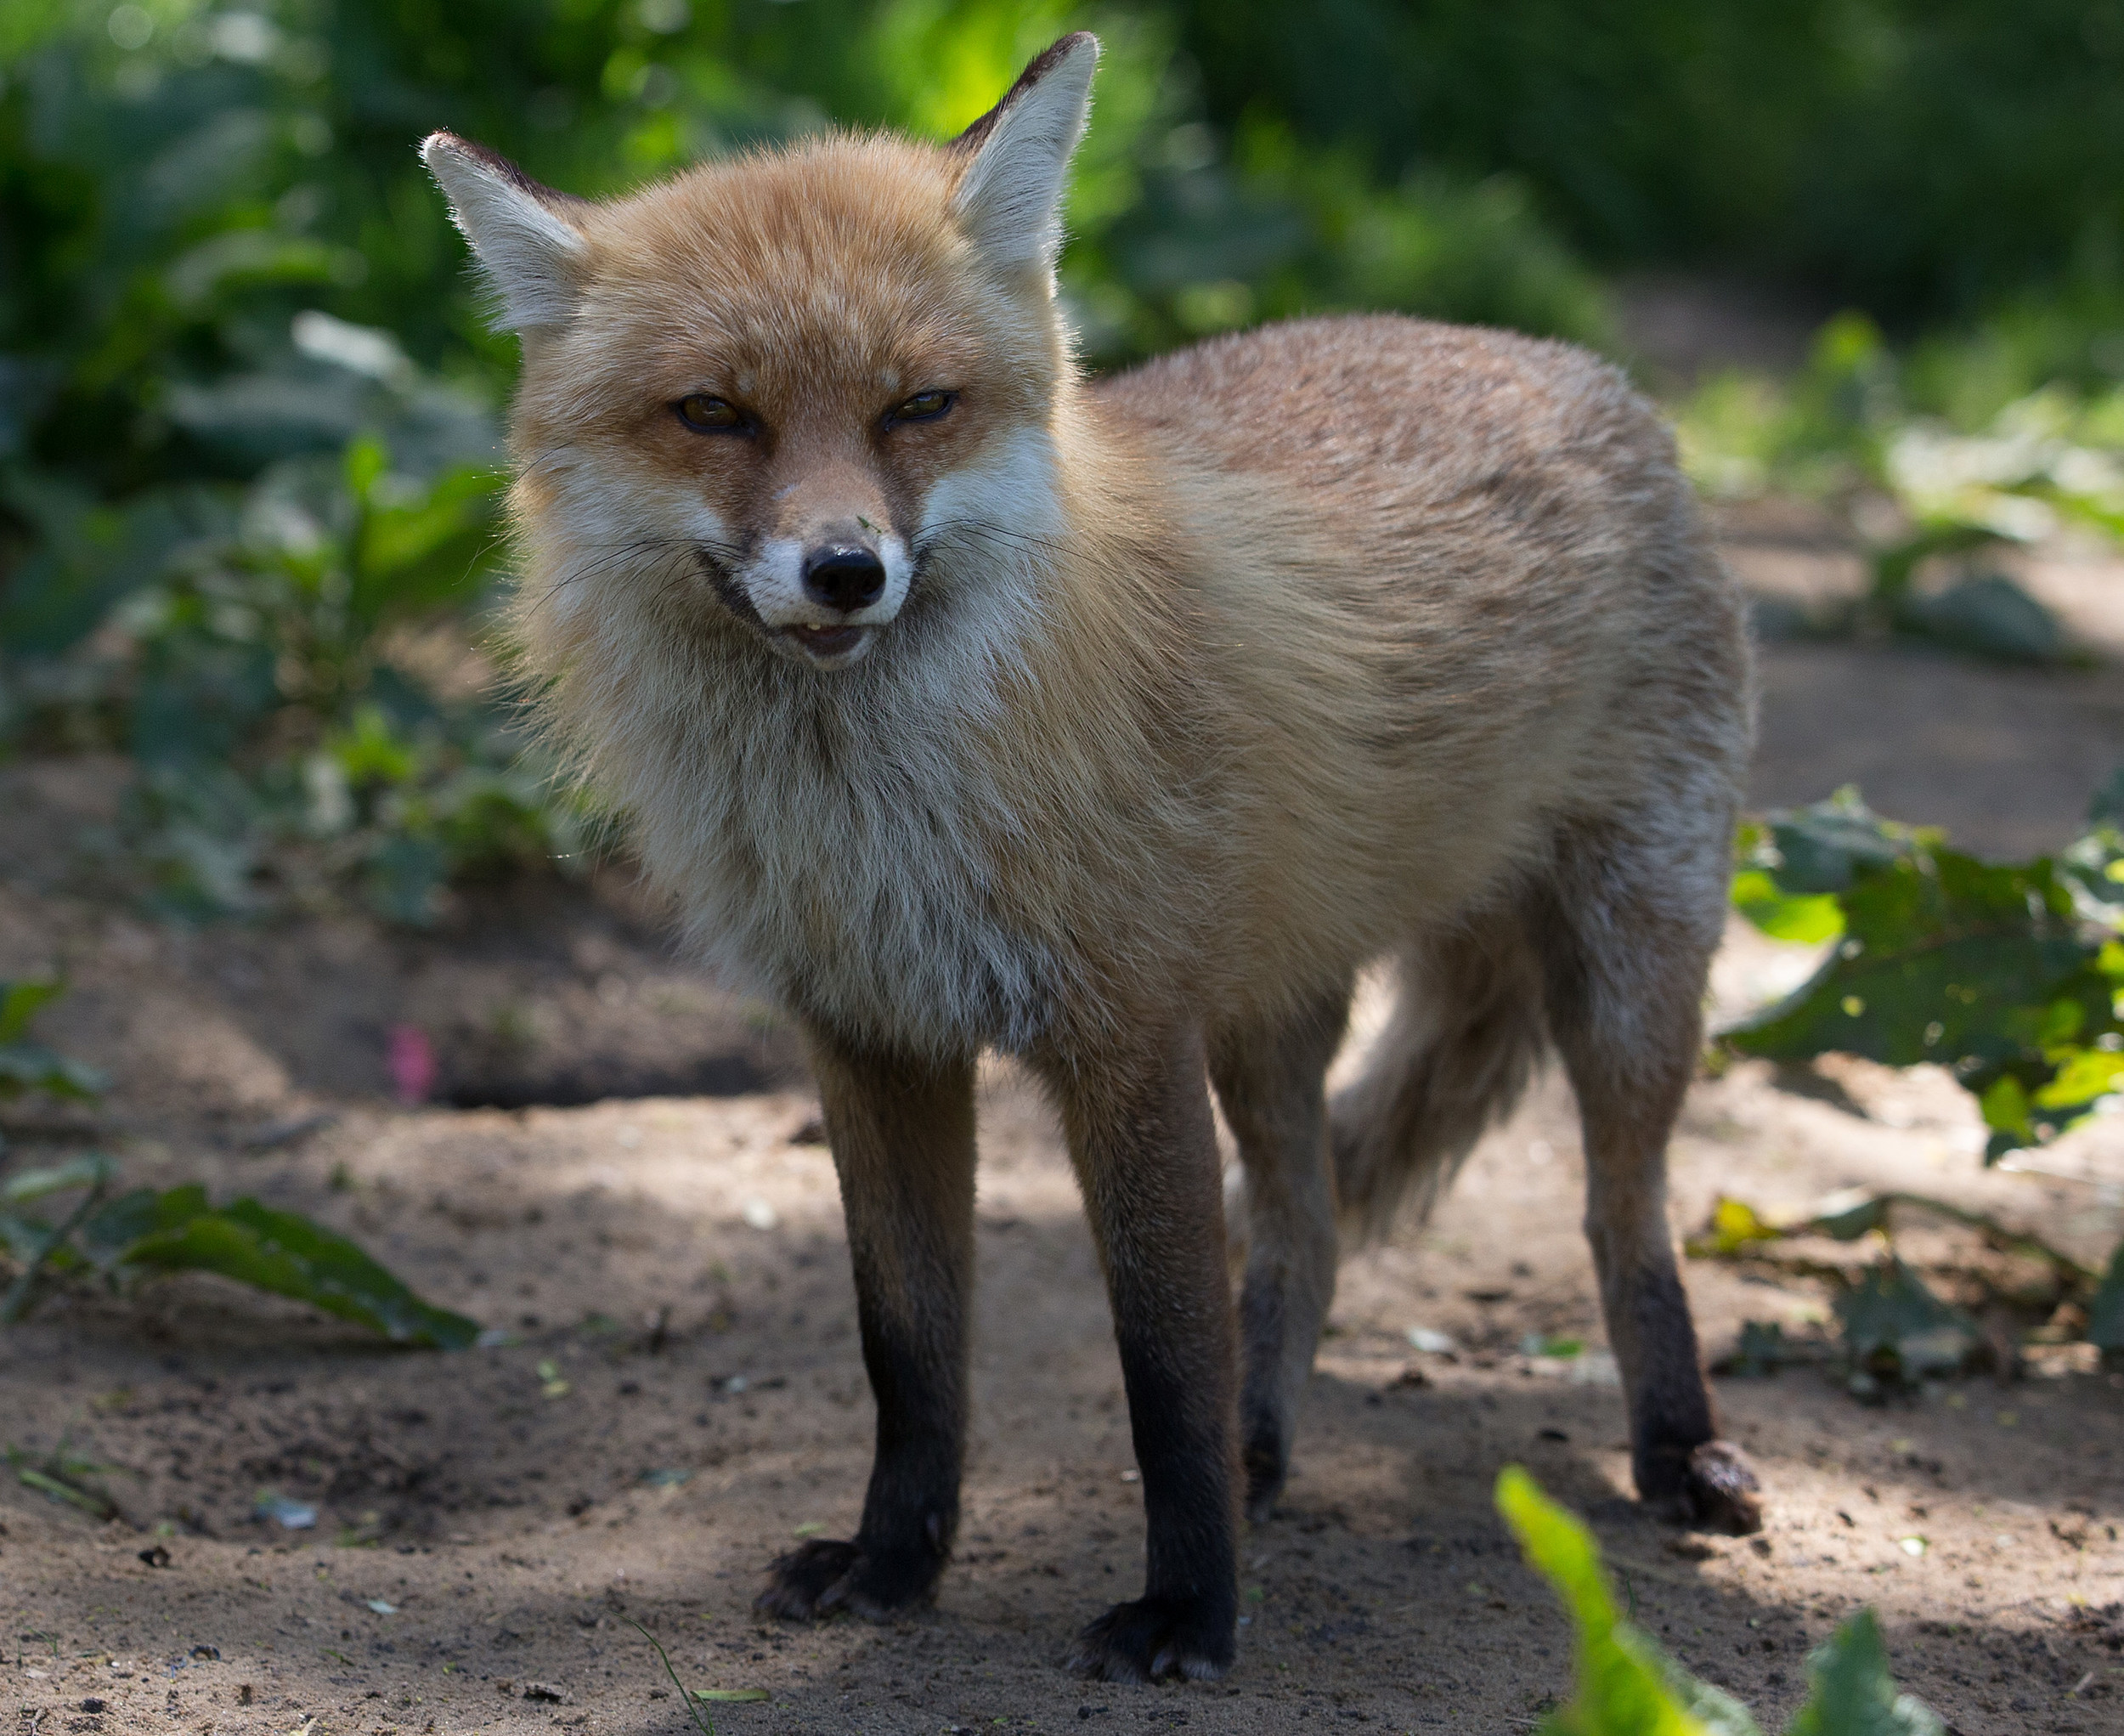 Calls To Repeal Controversial Hunting Ban Raises Animal Welfare Concerns